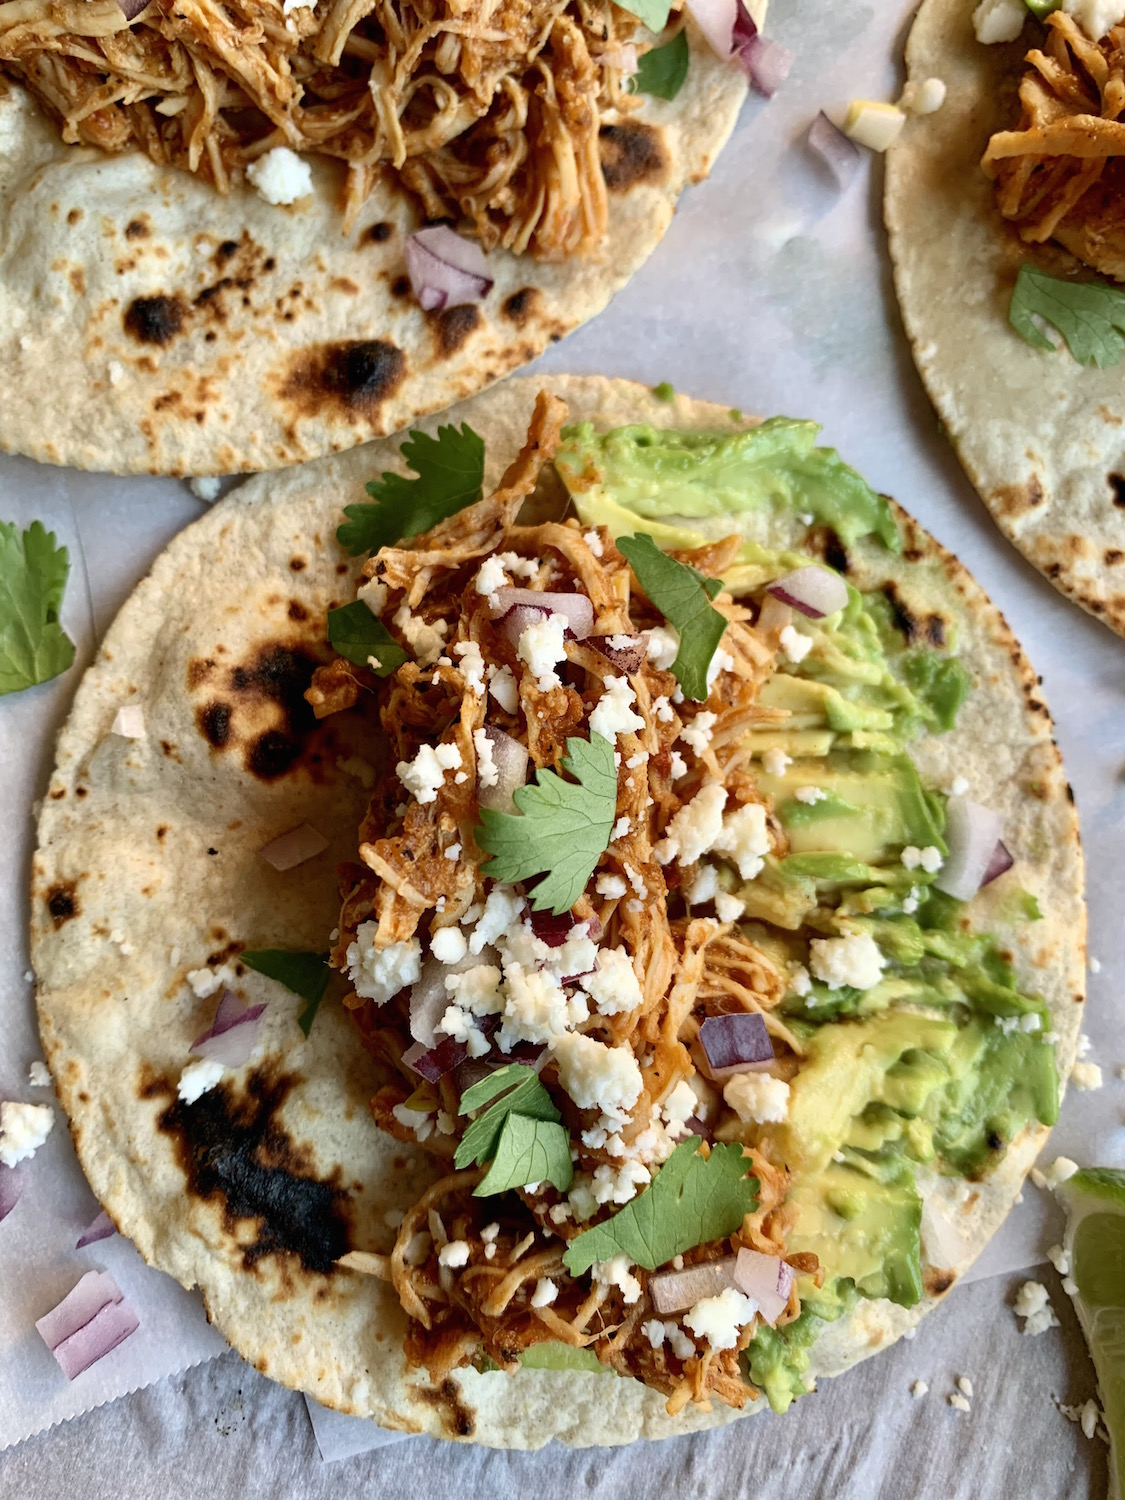 Close up of tortilla filled with chicken tinga, smashed avocado, diced onions, queso fresco and cilantro leaves